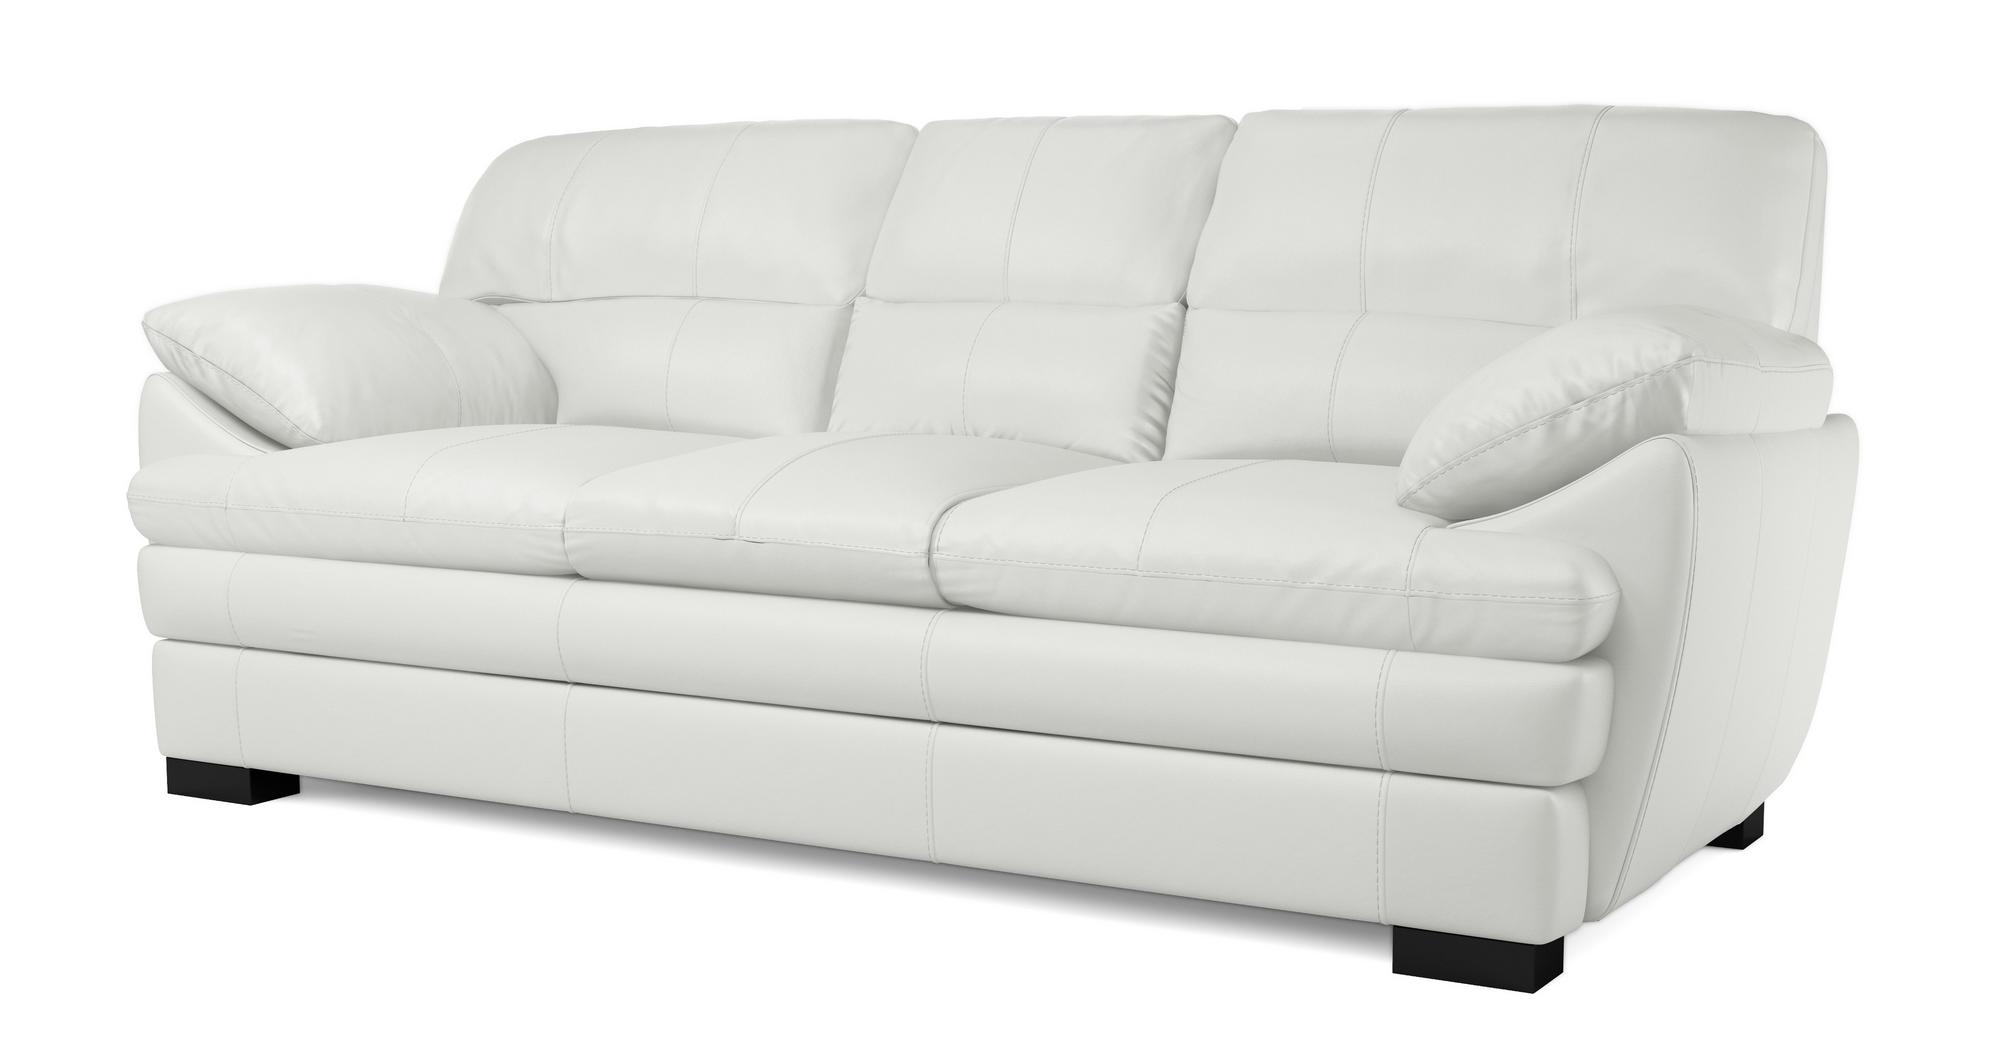 Dfs Quentin Aspen White 100 Leather 3 Seater Sofa